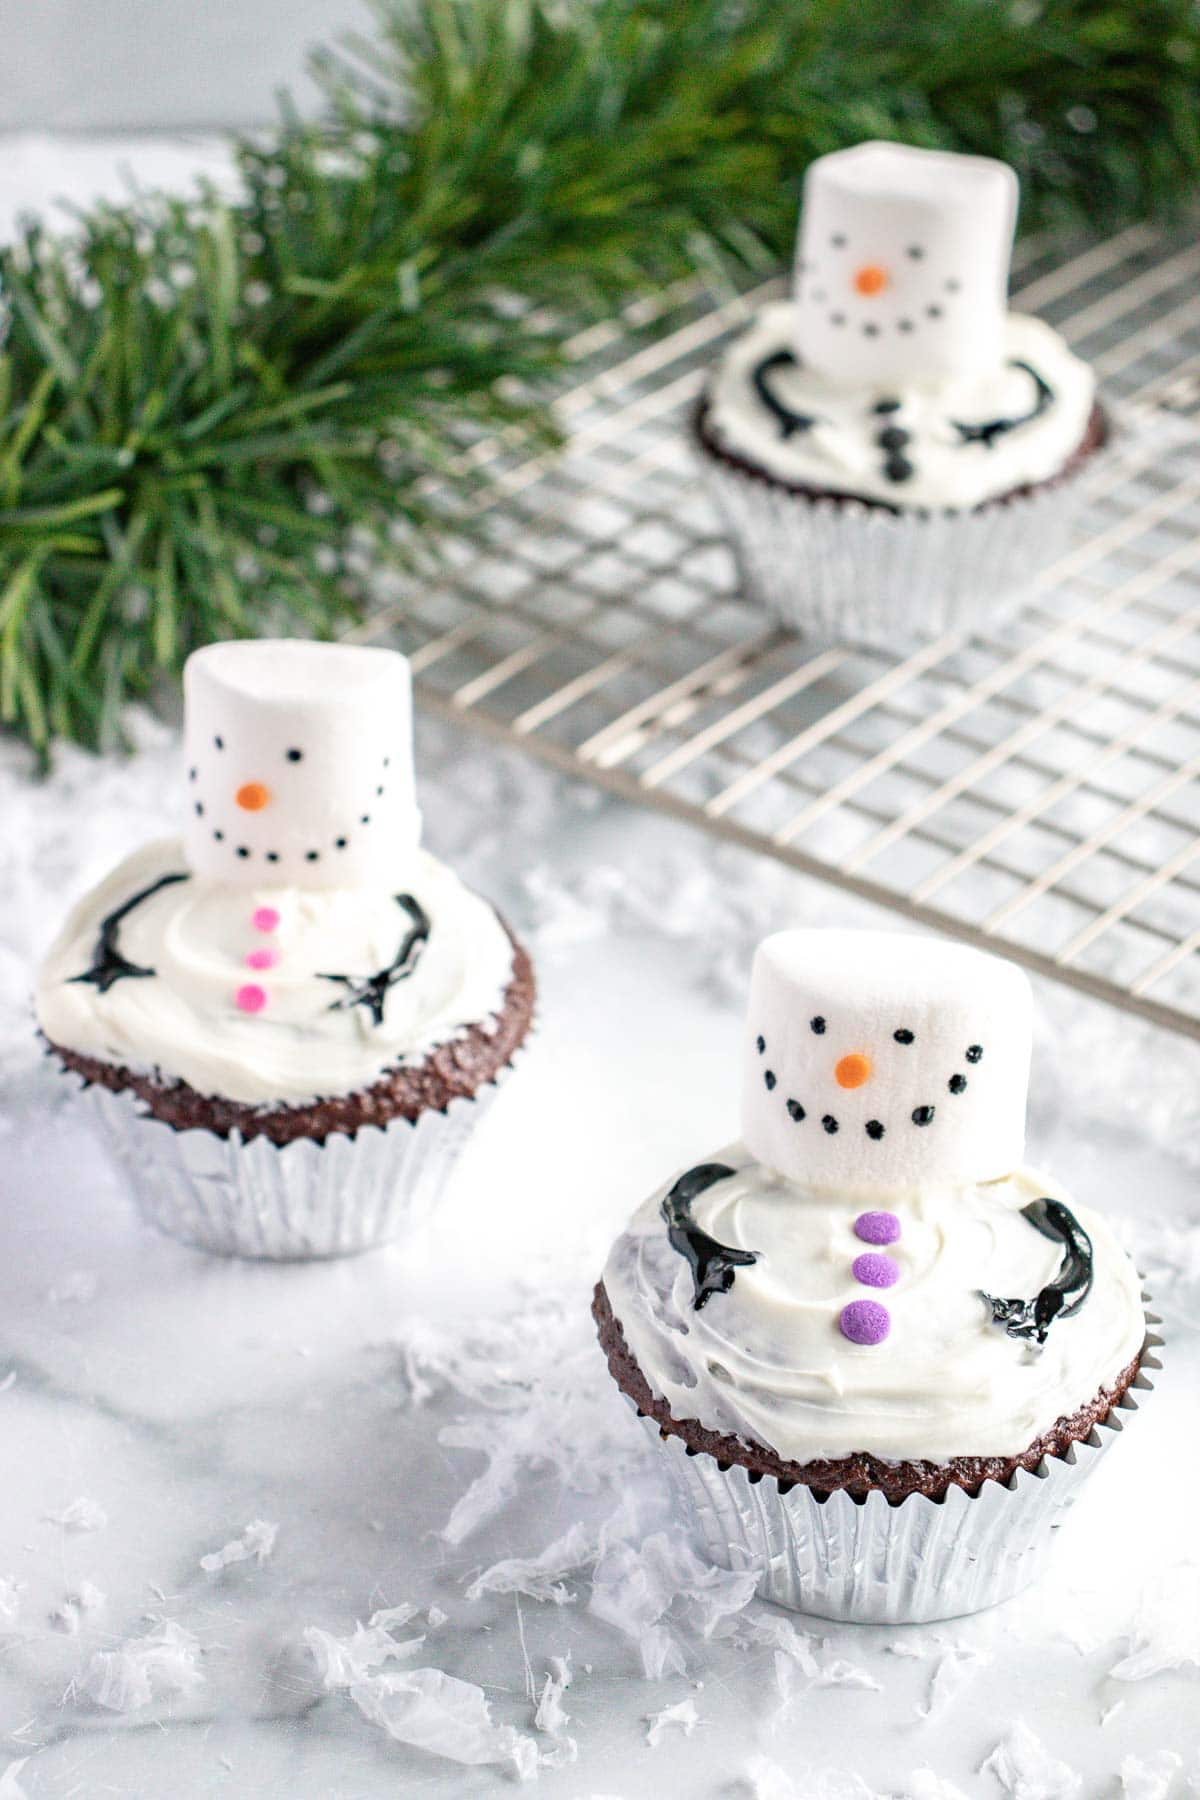 3 snowman cupcakes on a marble countertop